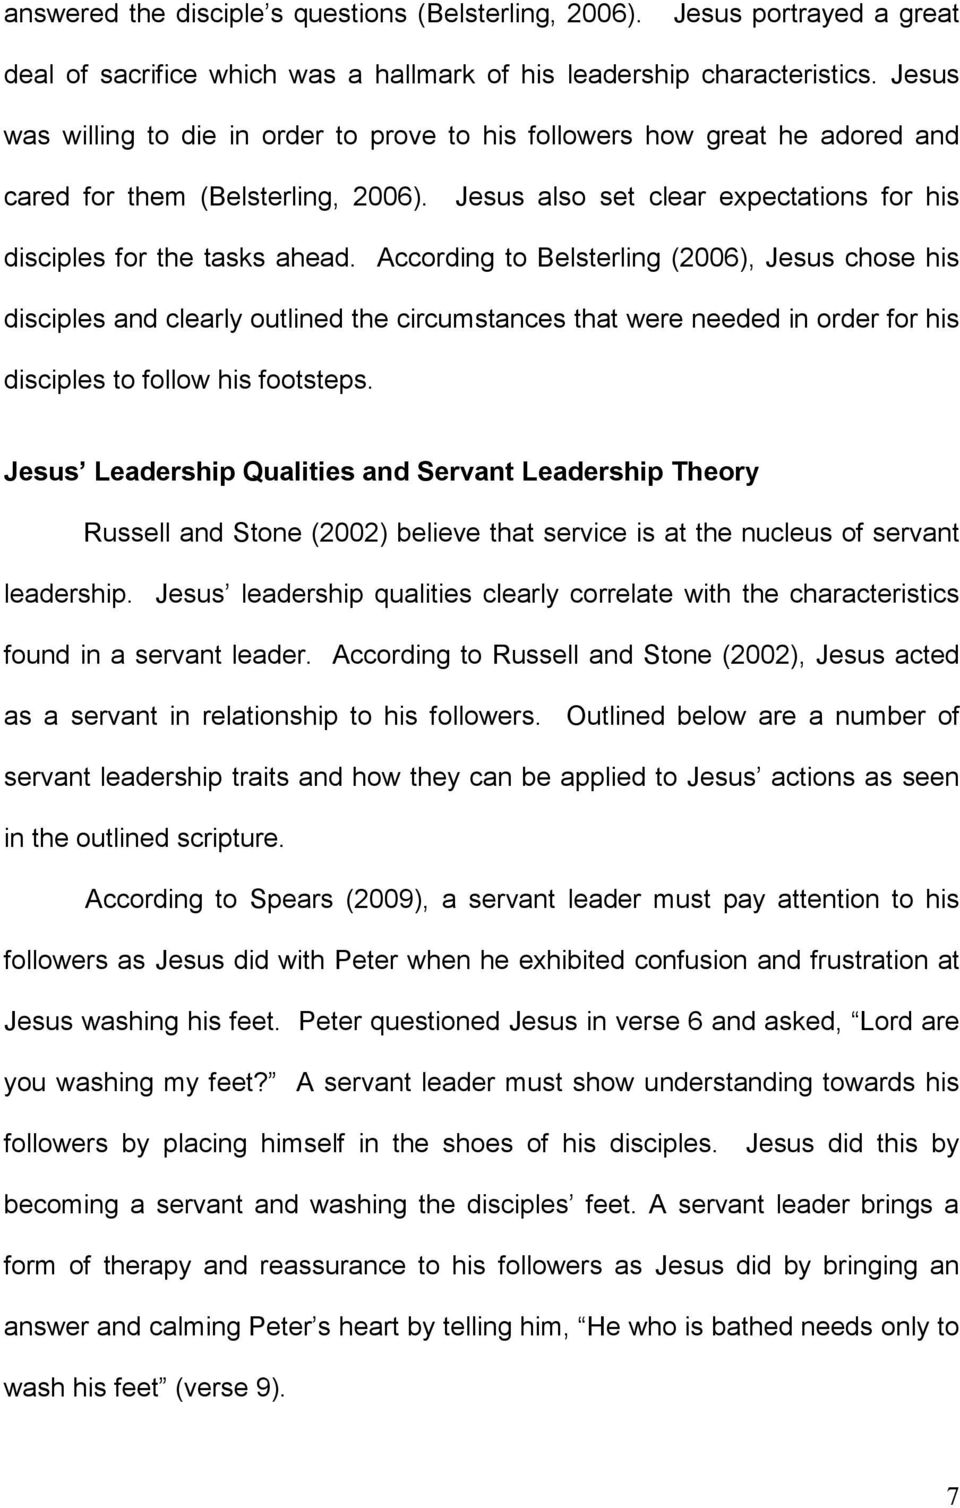 Jesus, the Originator of Servant Leadership  A Narrational Texture